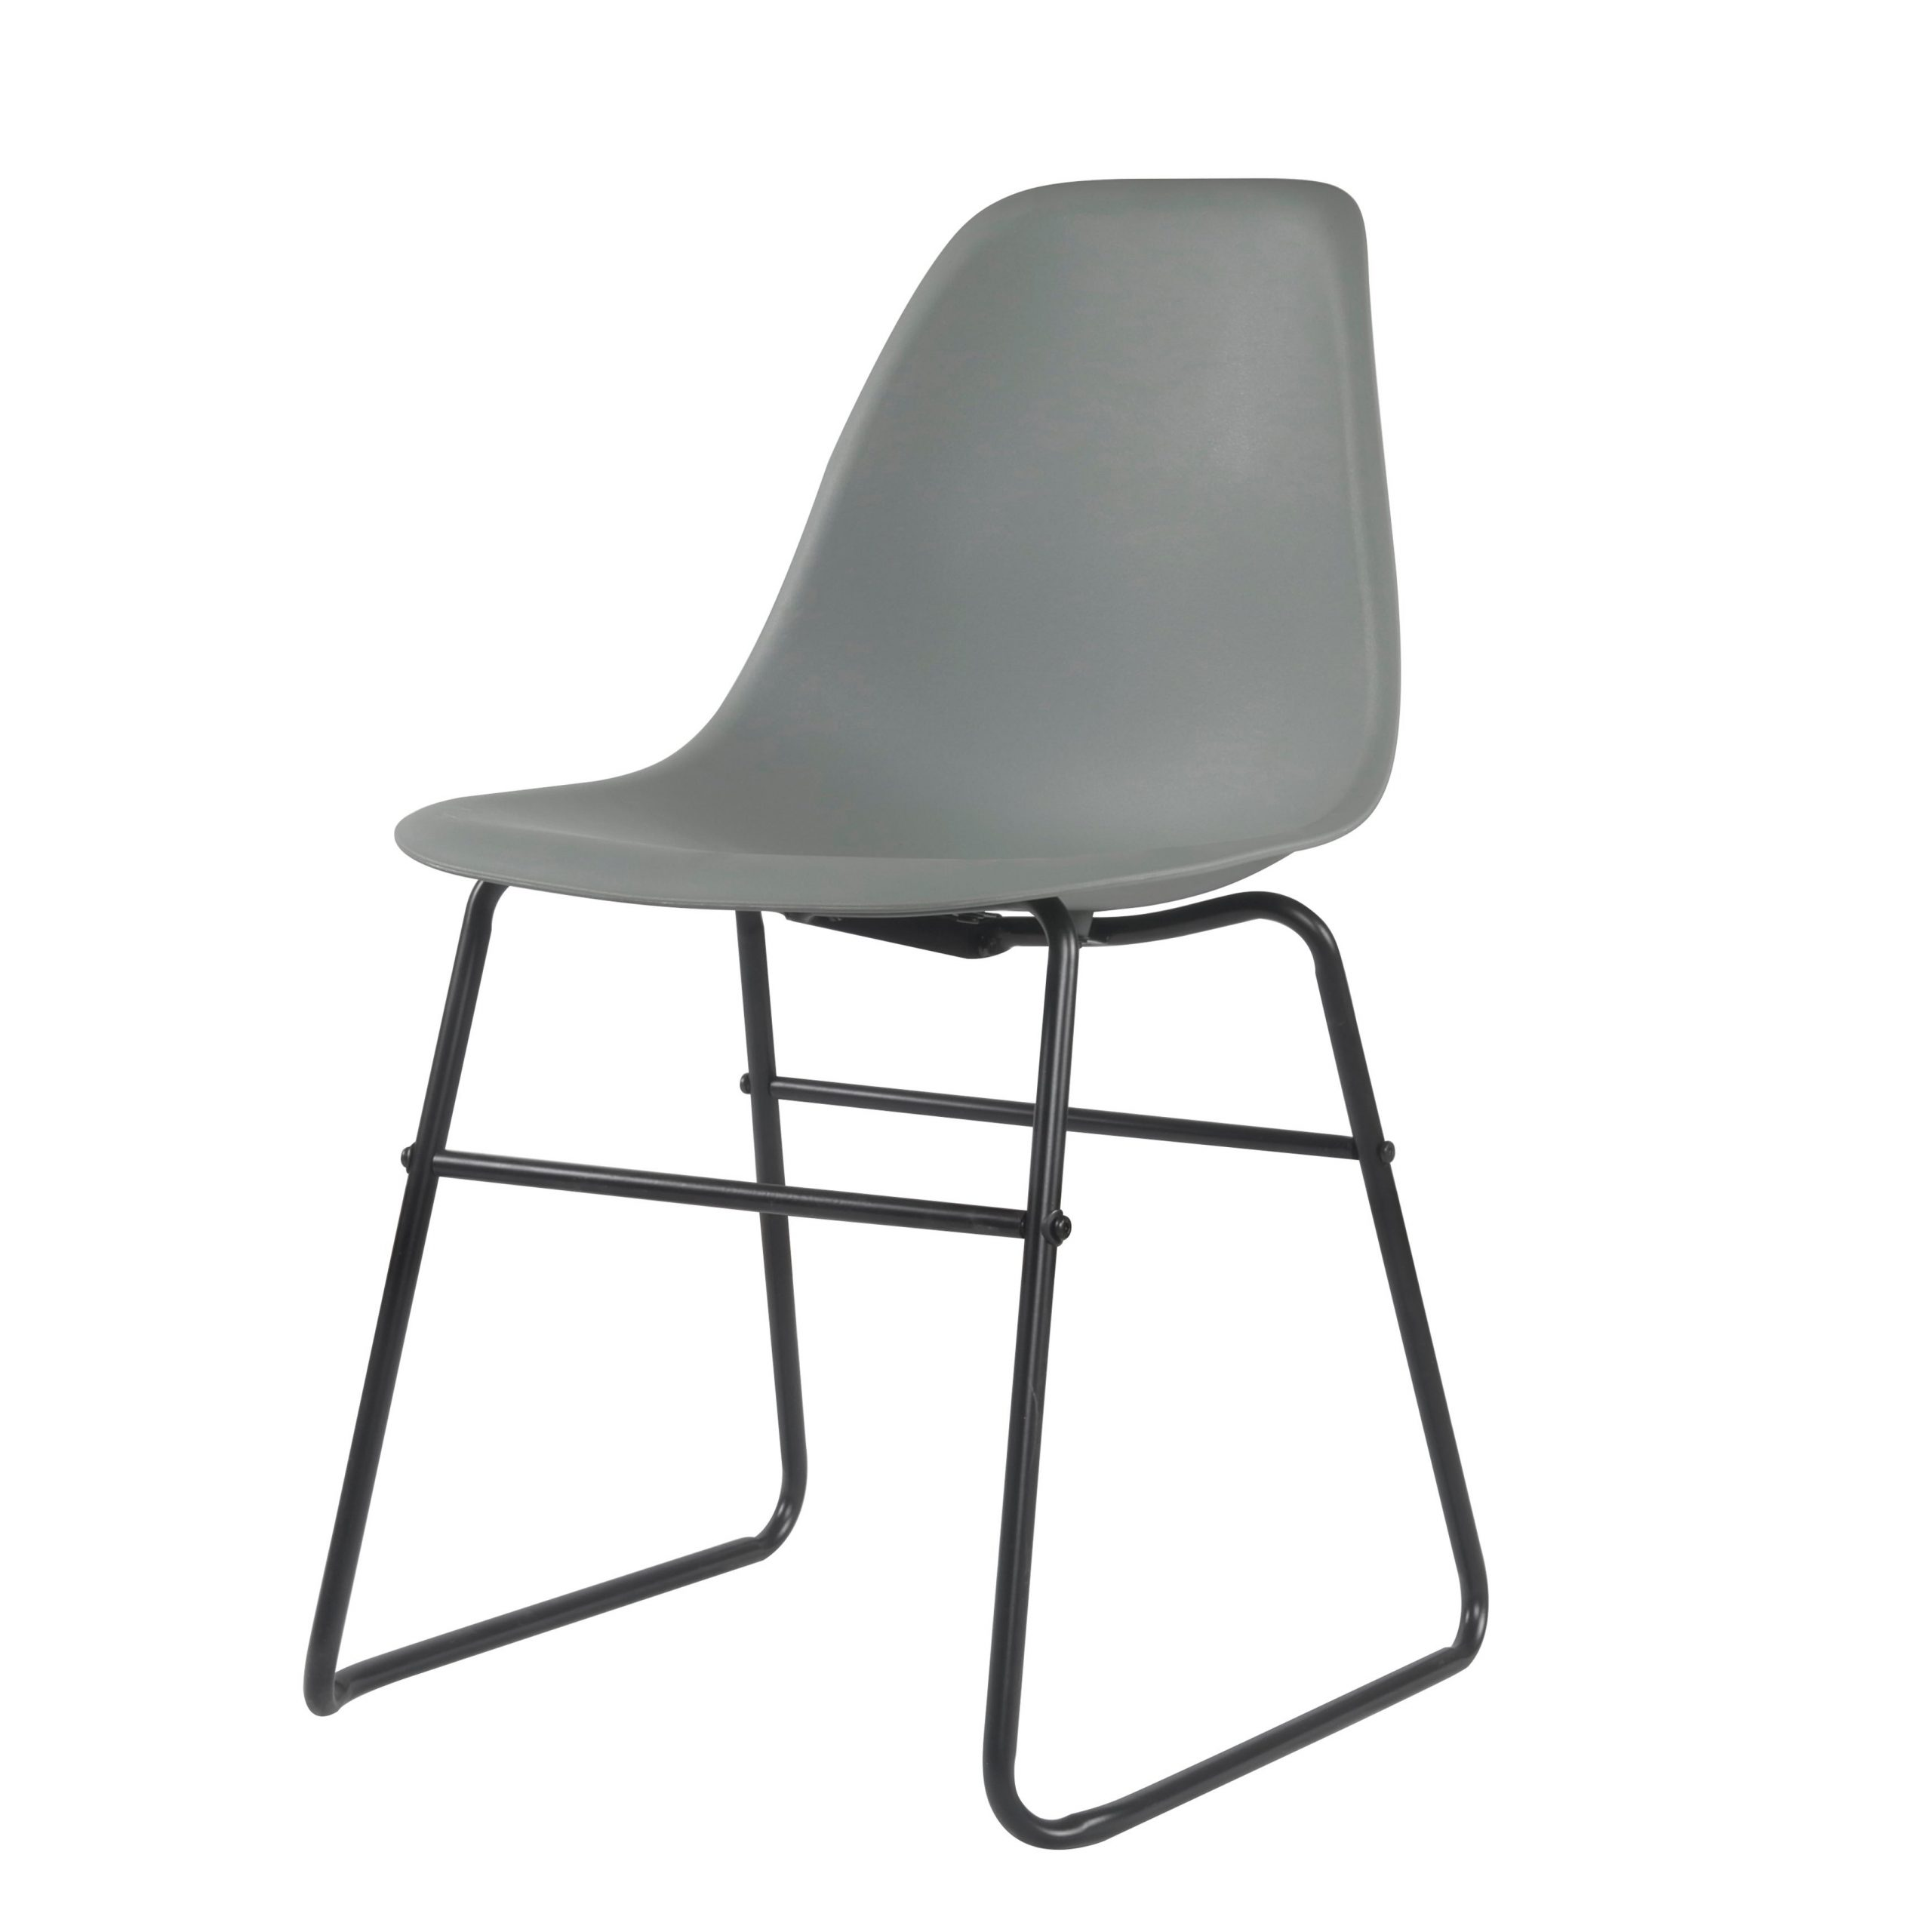 Widely Used Porthos Home Alivia Armless Modern Dining Chairs Set Of 2, Iron Legs For Aalivia Slipper Chairs (View 14 of 20)